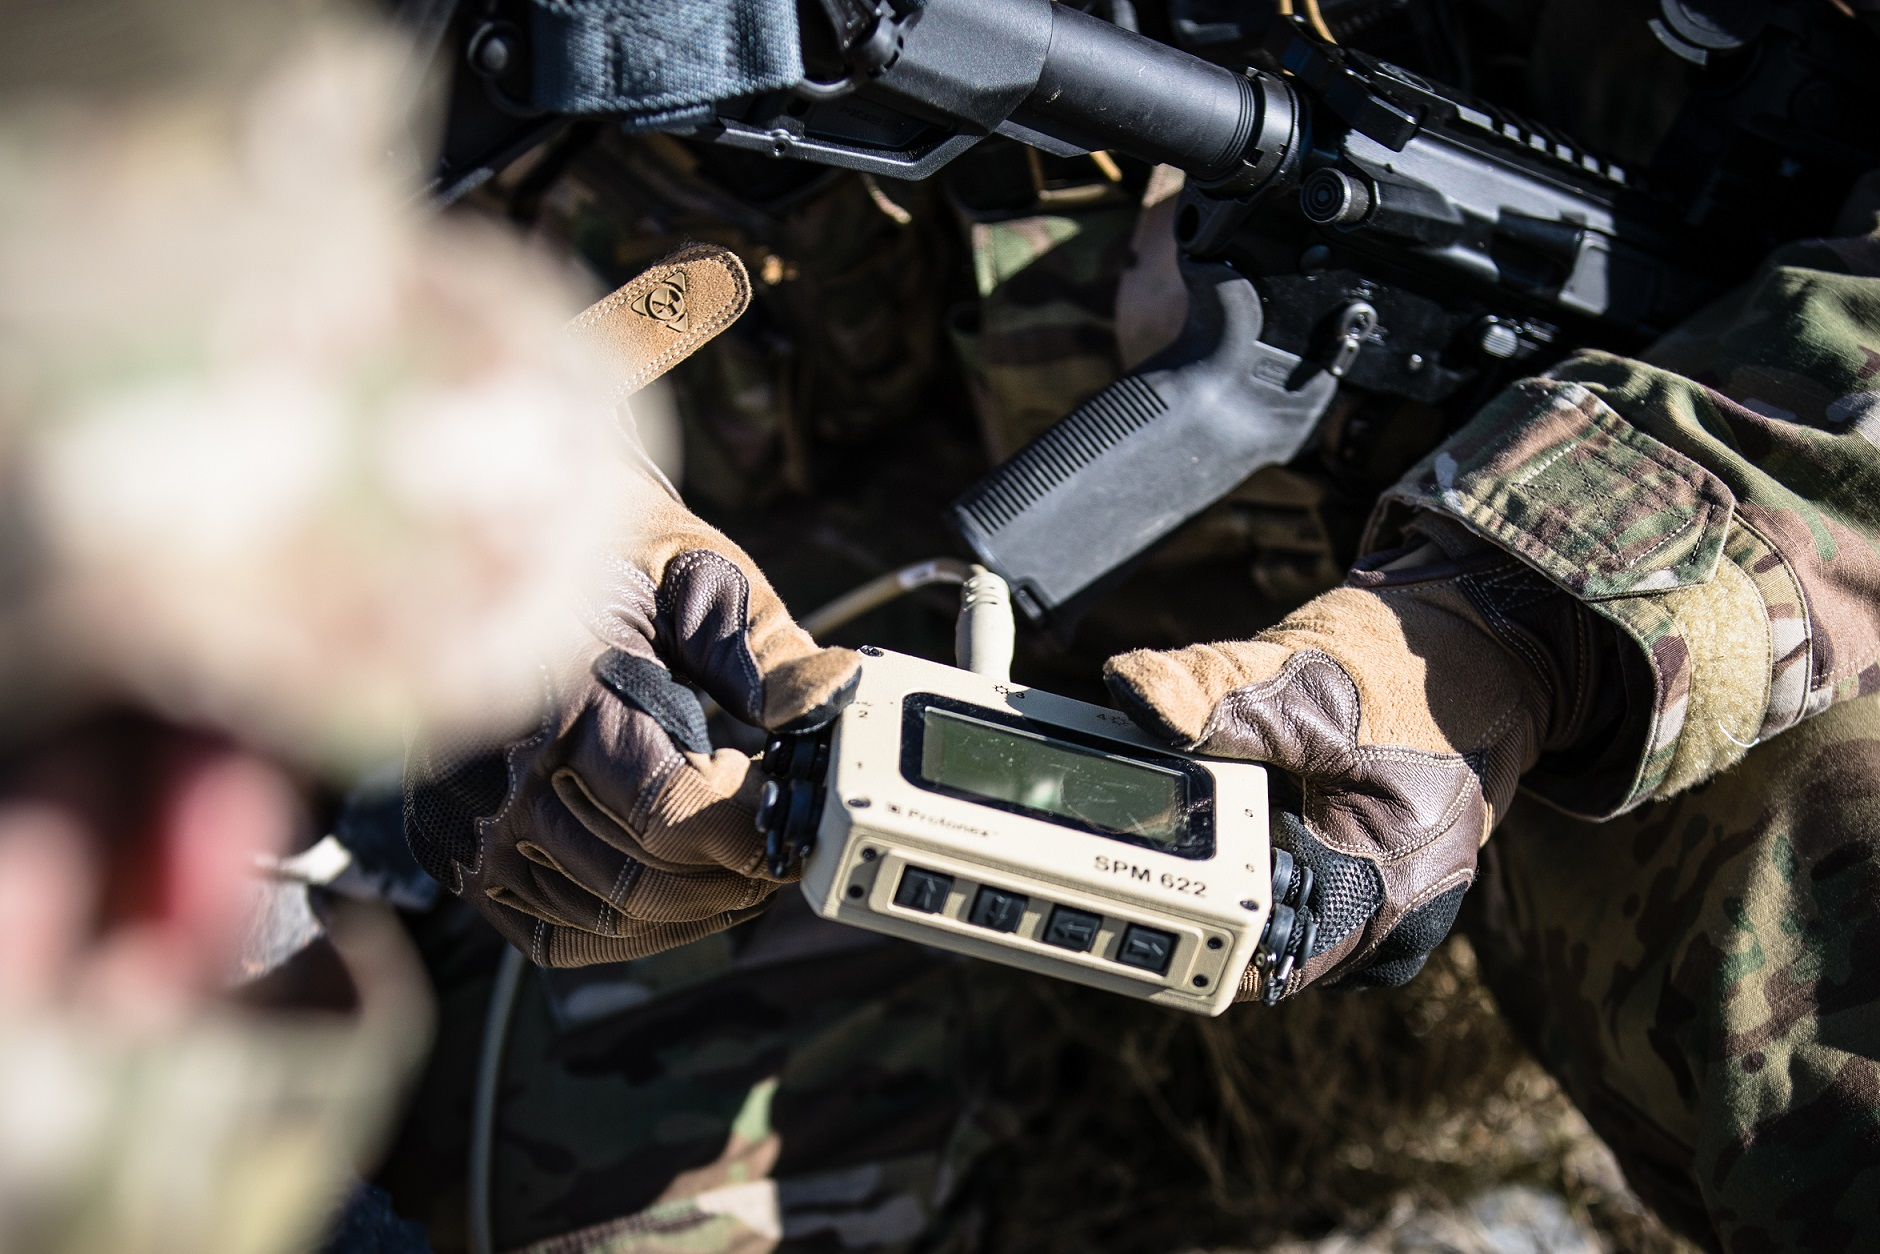 SPM-622 in the field